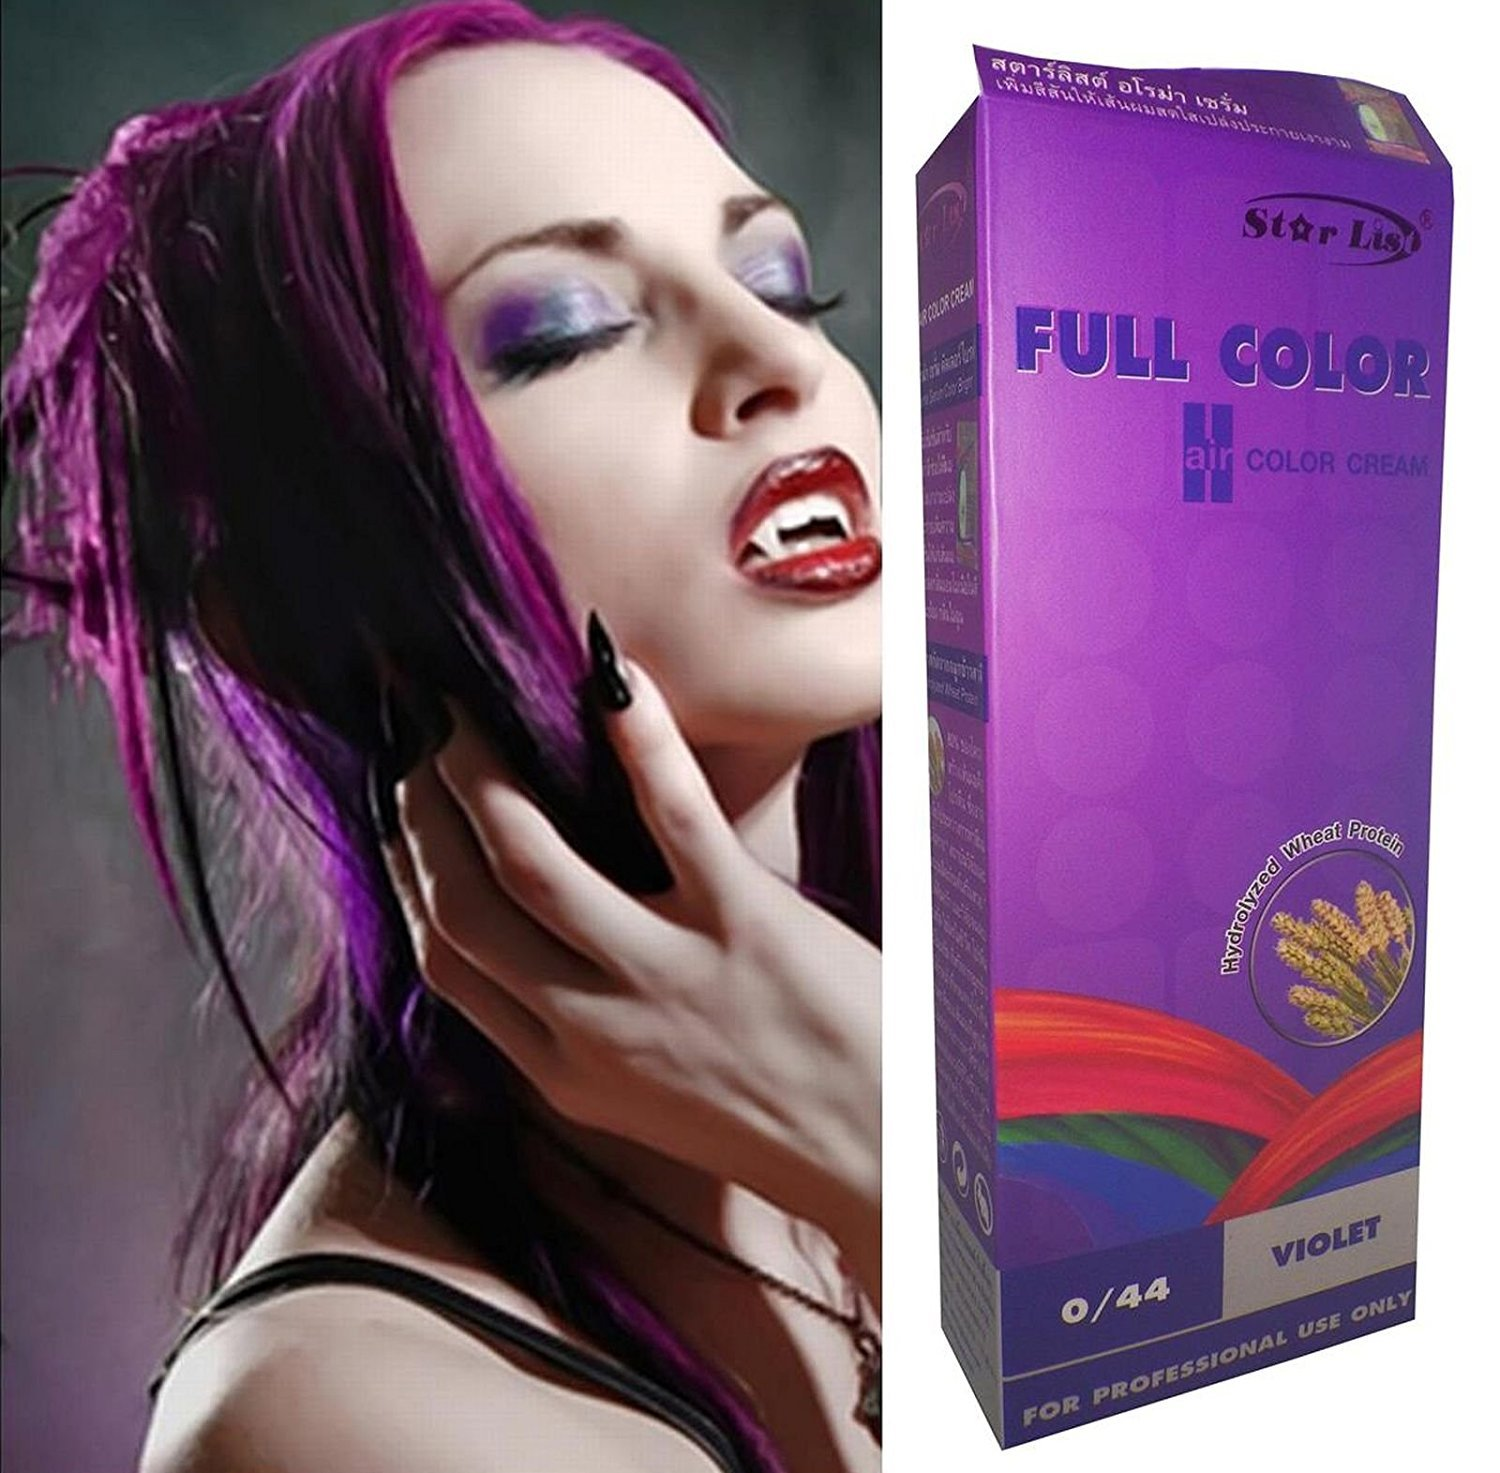 Starlist Permanent Hair Colour Cream Dye Goth Cosplay Emo Punk Purple with Serum